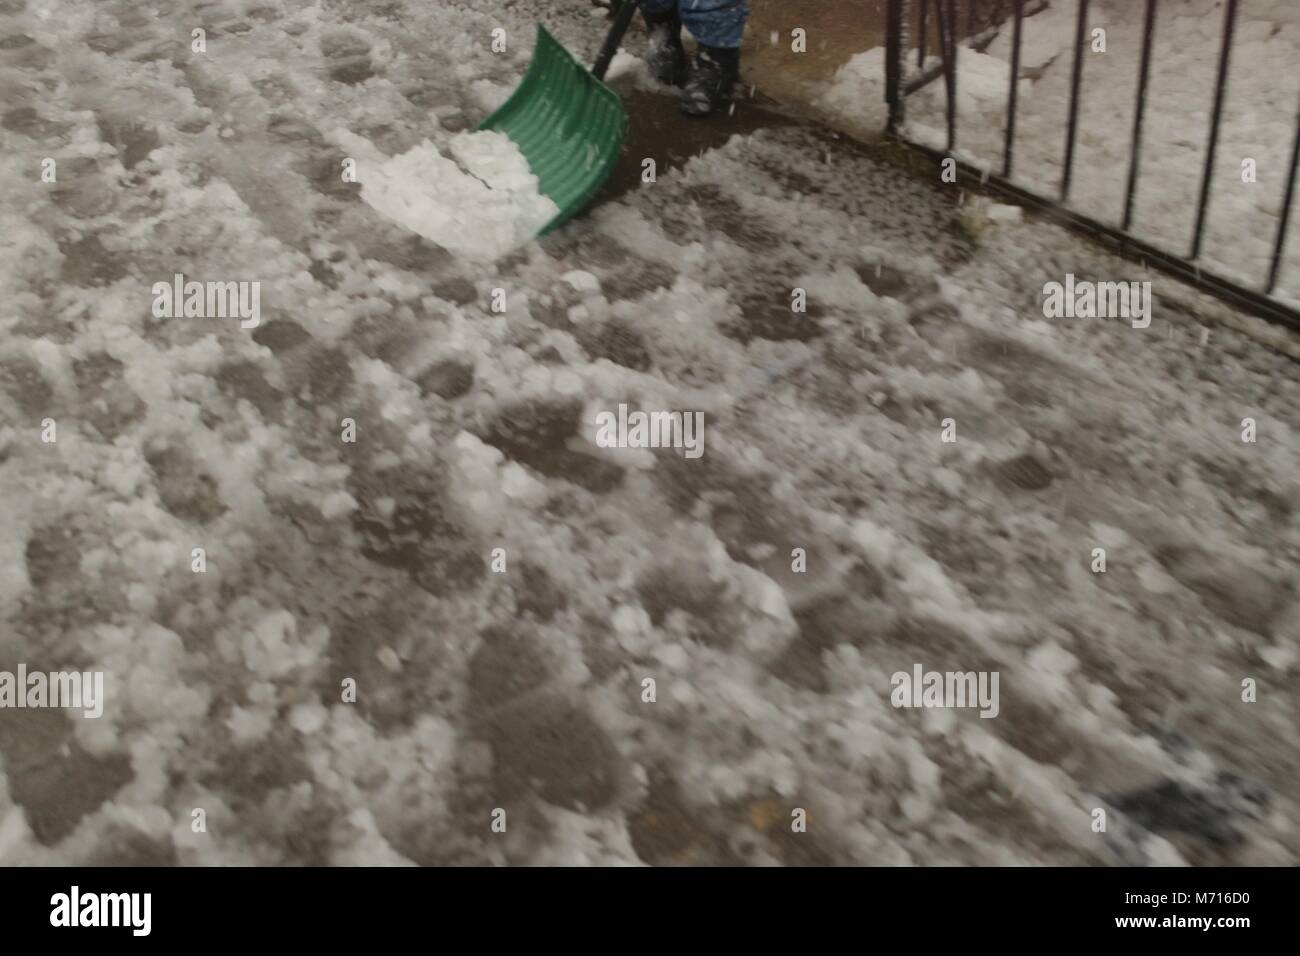 Shoveling a sidewalk covered in slushy snow during the Nor'easter of March 7th, 2018 in Brooklyn New York. - Stock Image